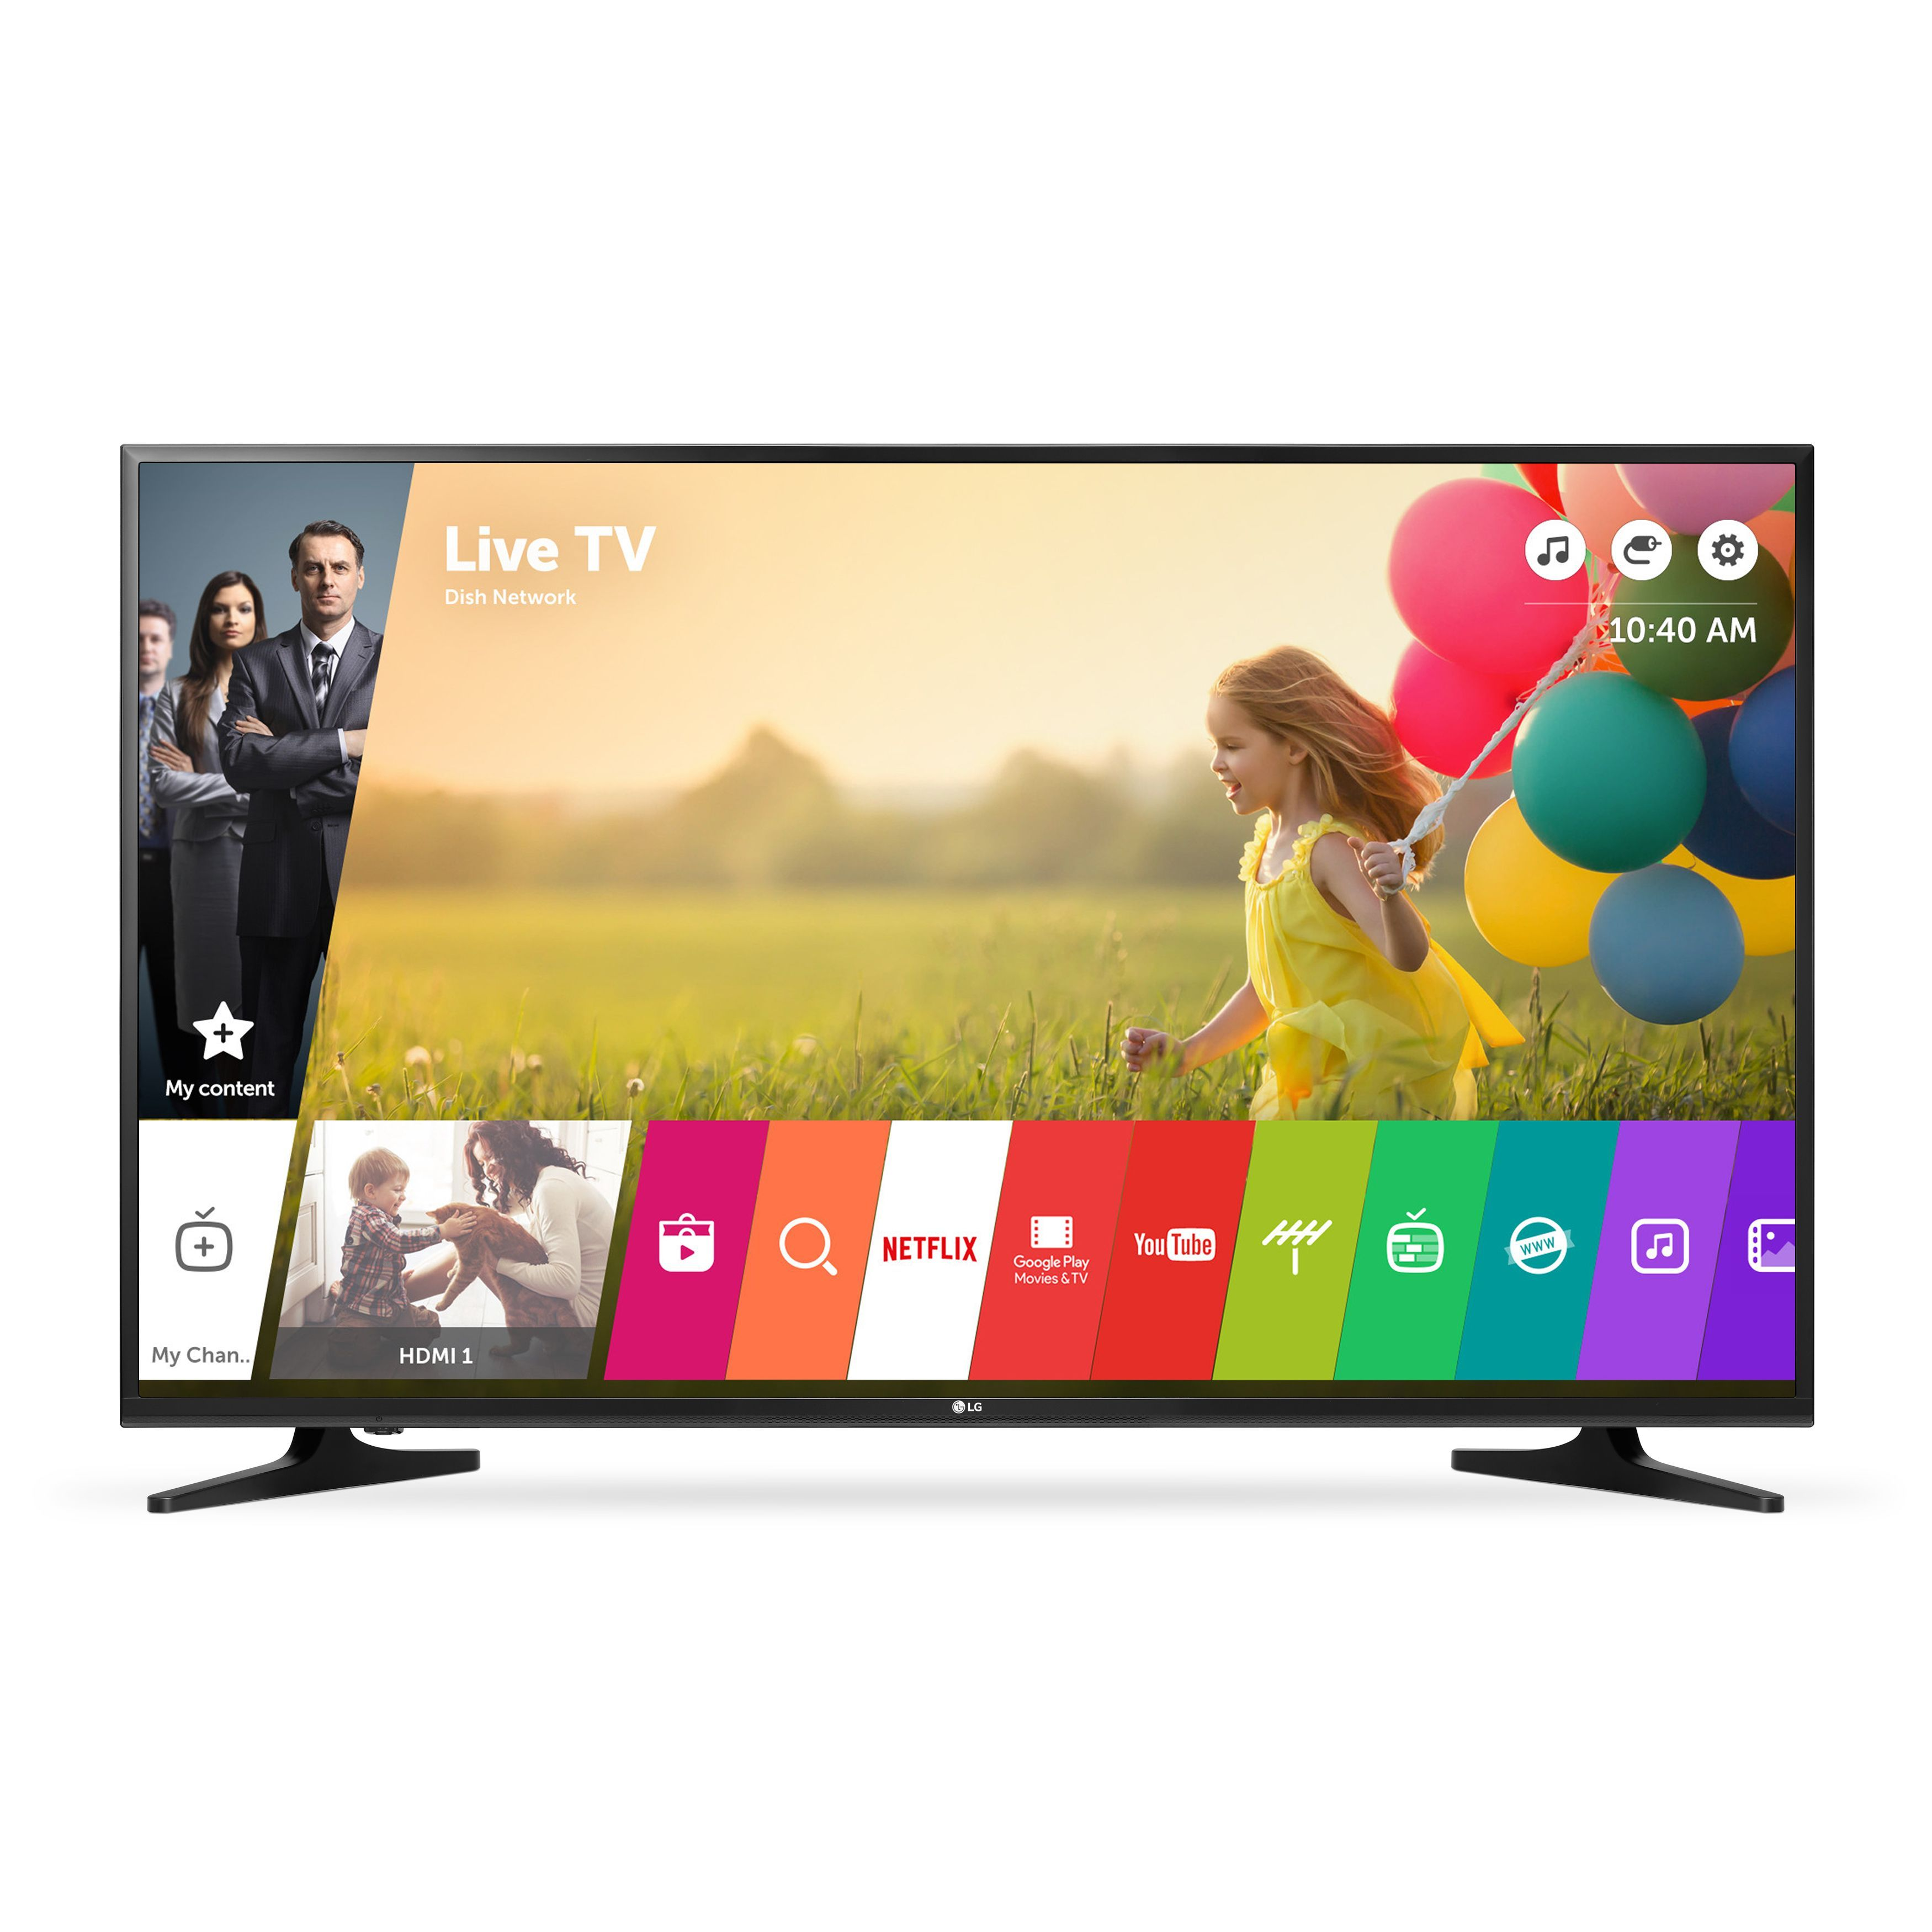 4b7144ef0 LG 50UH5500 50-inch Class 4K UHD LED Television With Smart TV